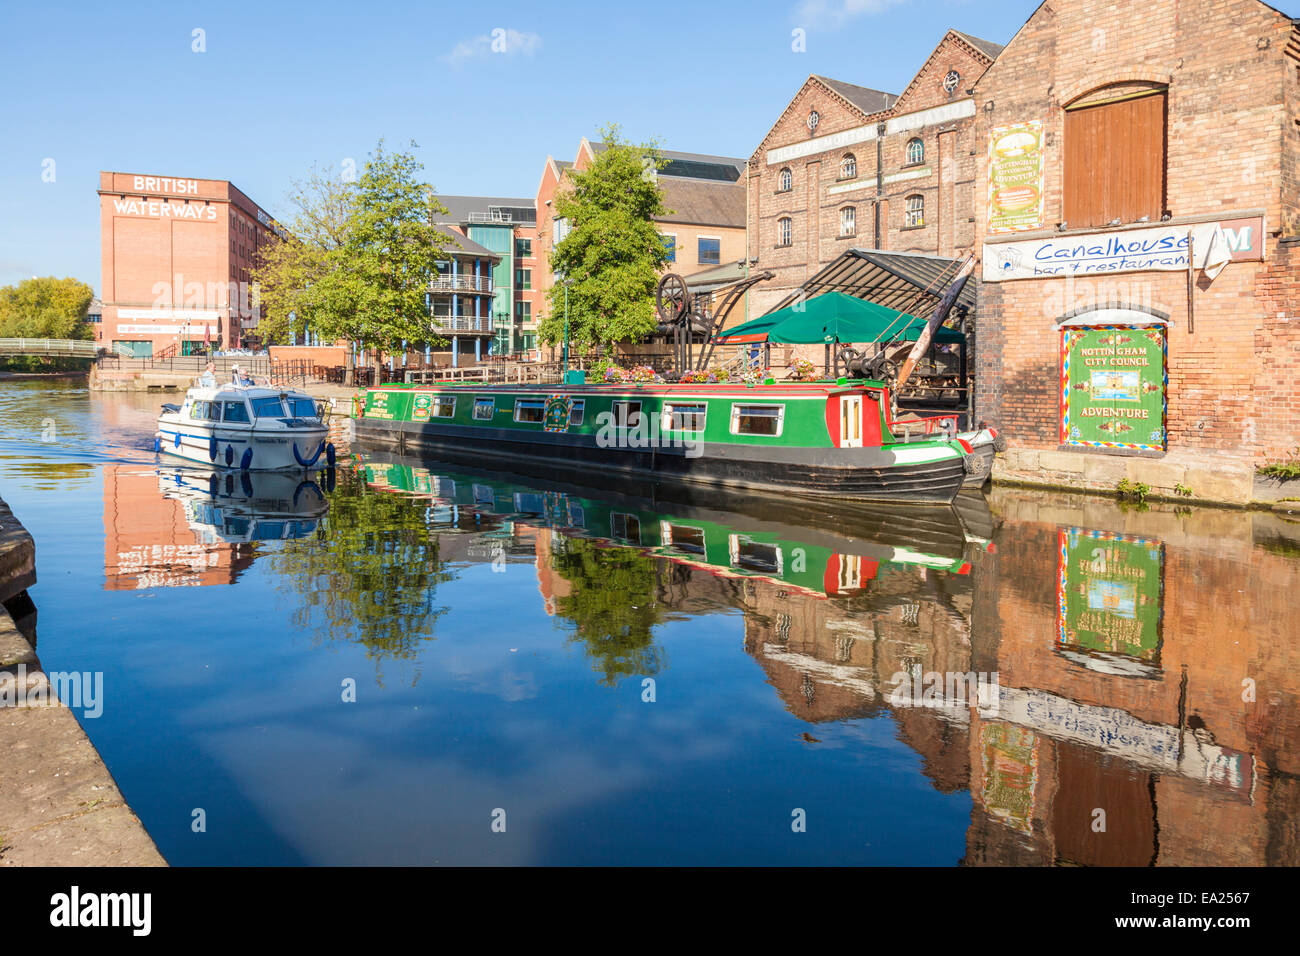 Boat, narrowboats and various buildings in Autumn on the Waterfront area of the Nottingham and Beeston Canal, Nottingham, - Stock Image